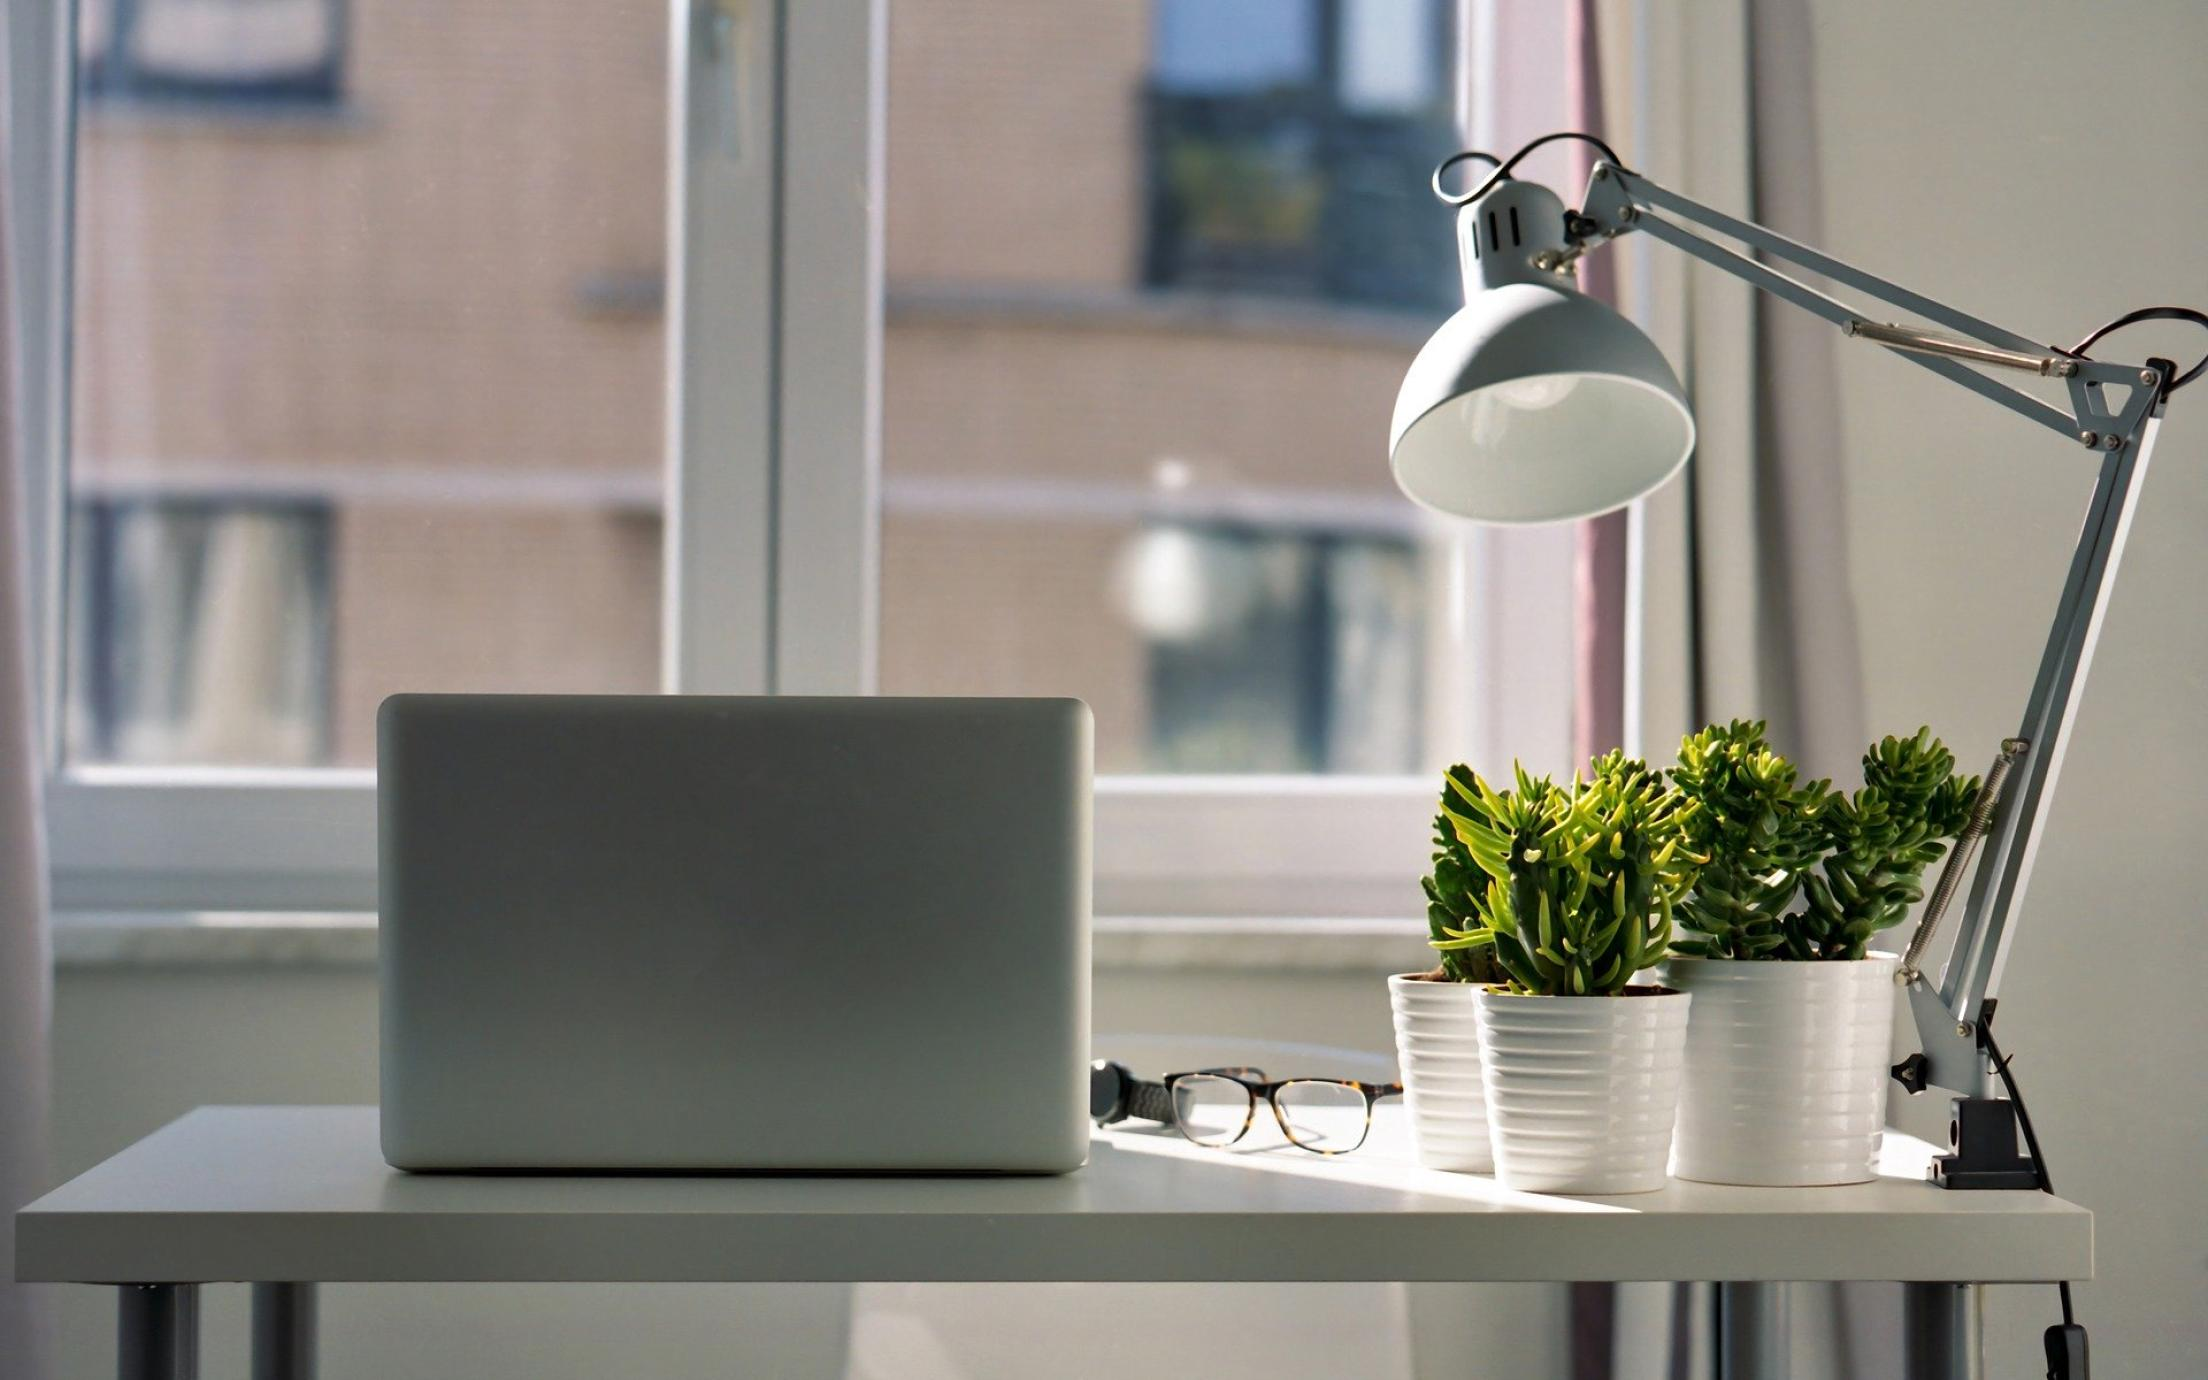 Photo of a desk with natural light coming in from a window and plants sitting on the desk